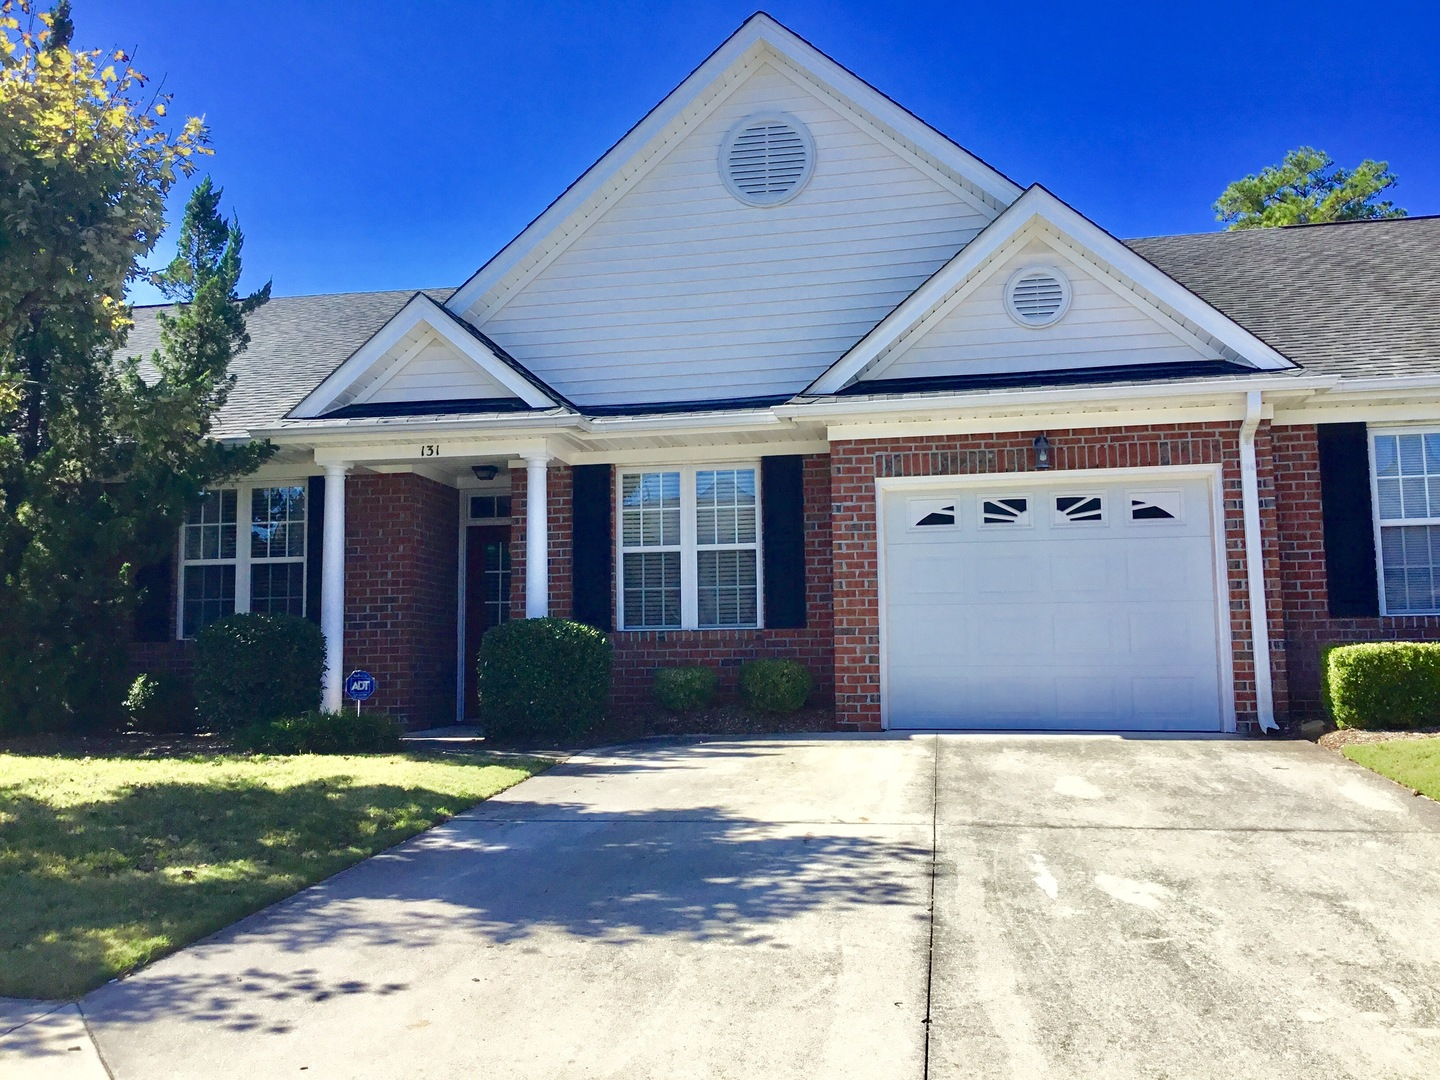 Home for rent in Wilmington, North Carolina, listed by Sea Coast Rentals.